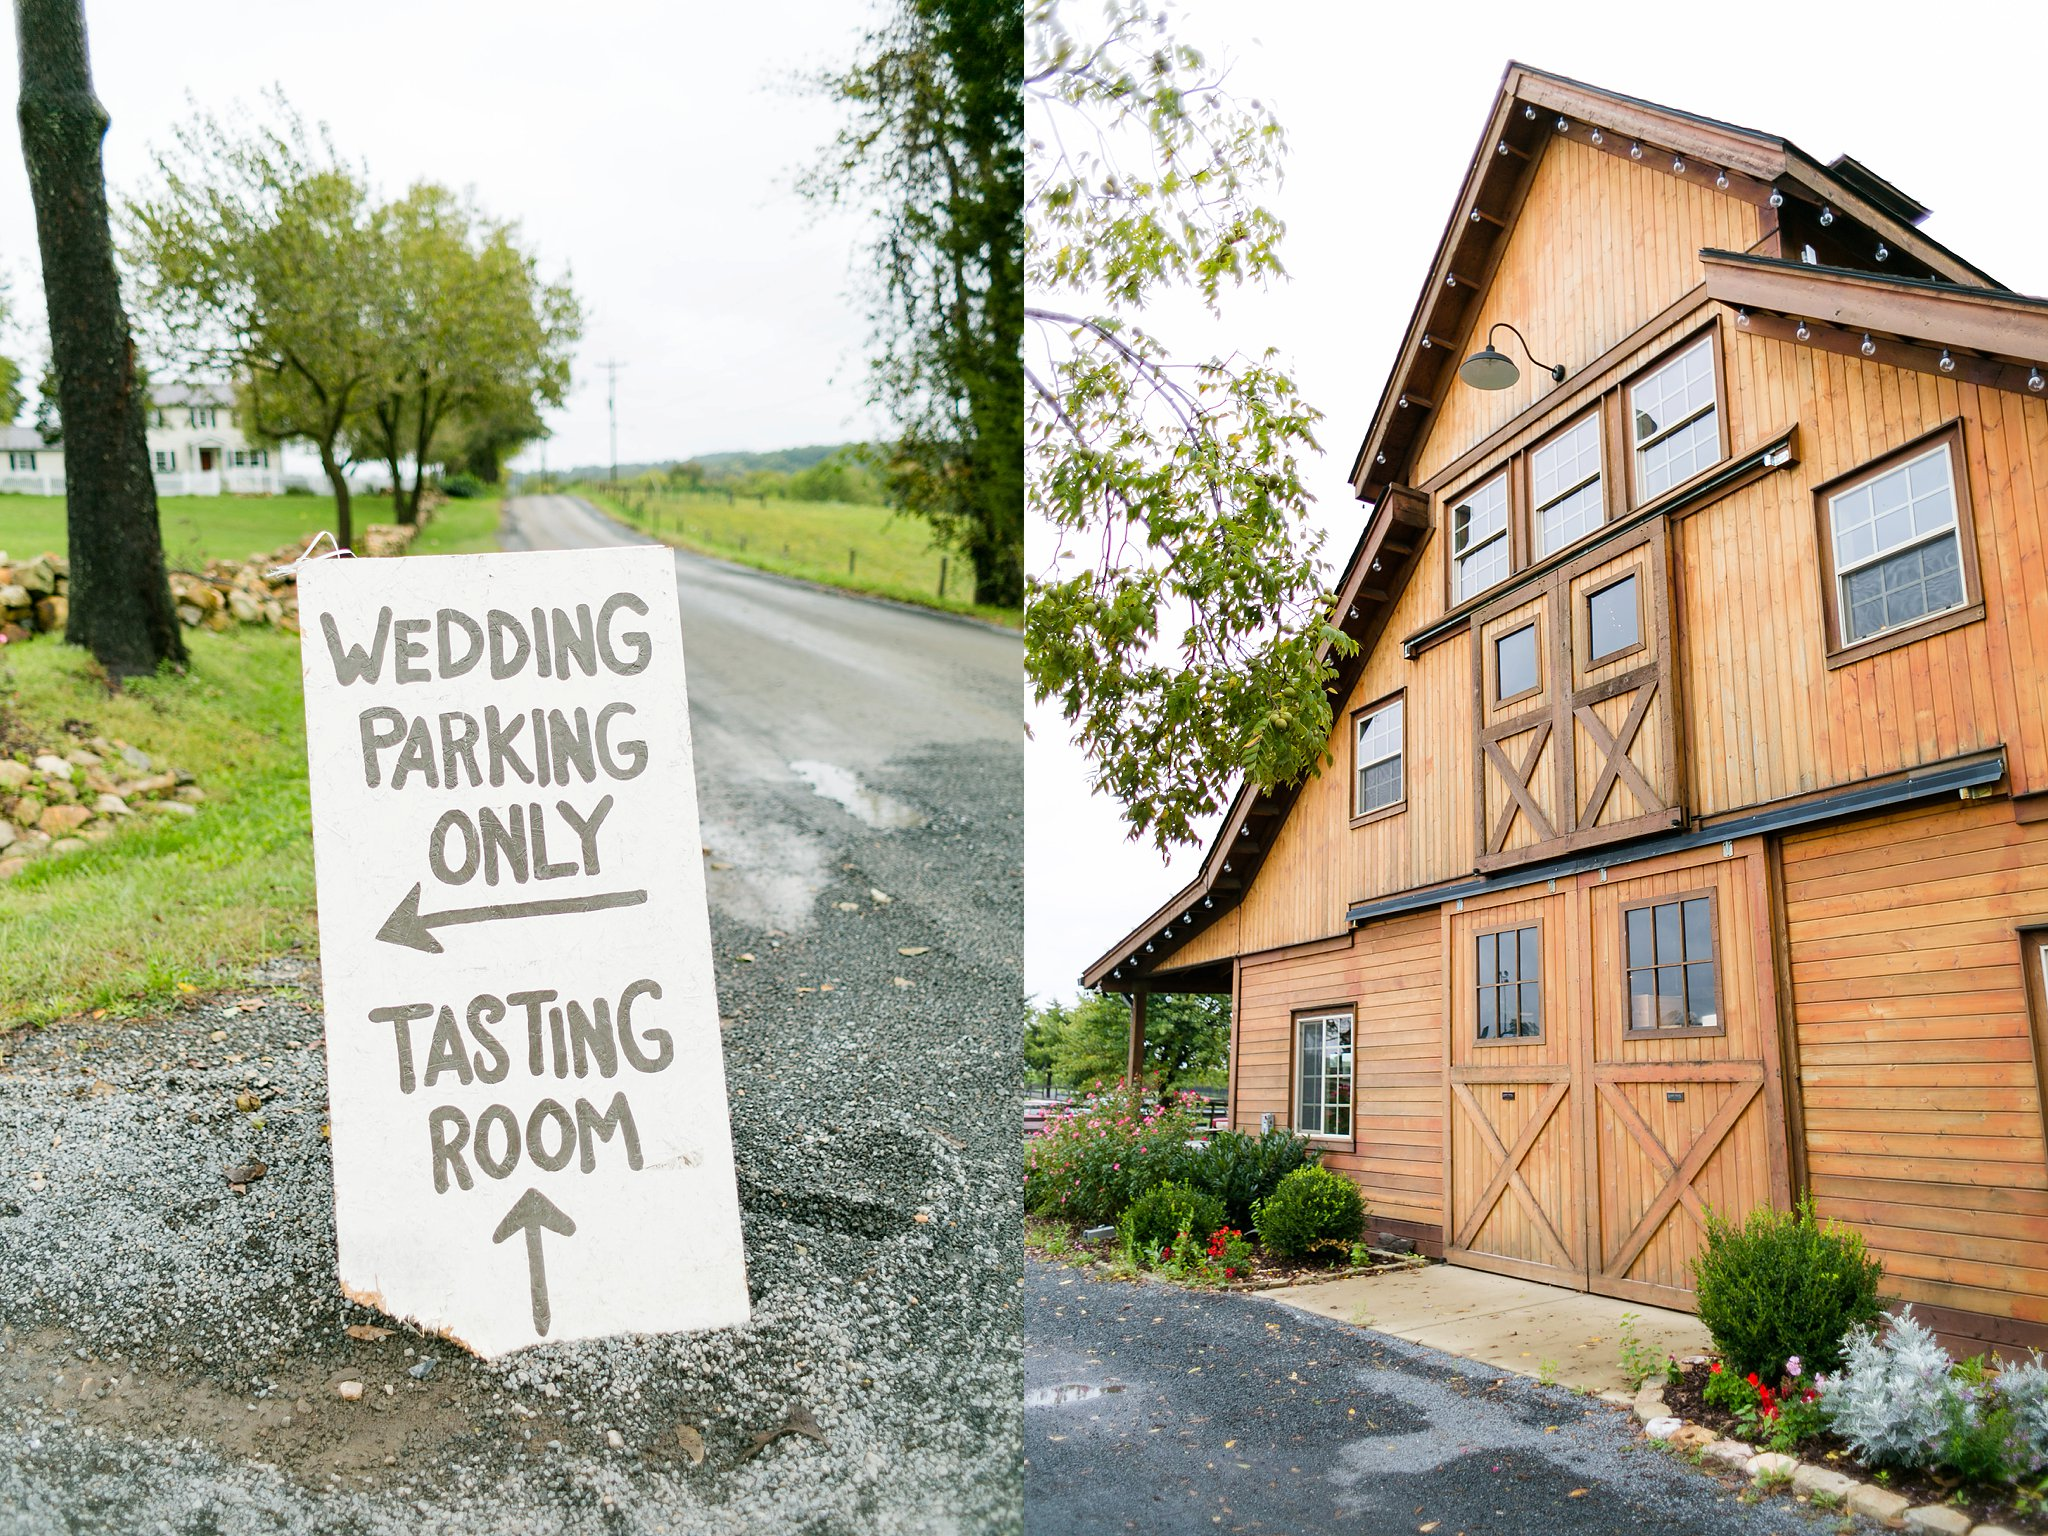 Stone Tower Winery Wedding Photos Virginia Wedding Photographer Megan Kelsey Photography Sam & Angela-3.jpg